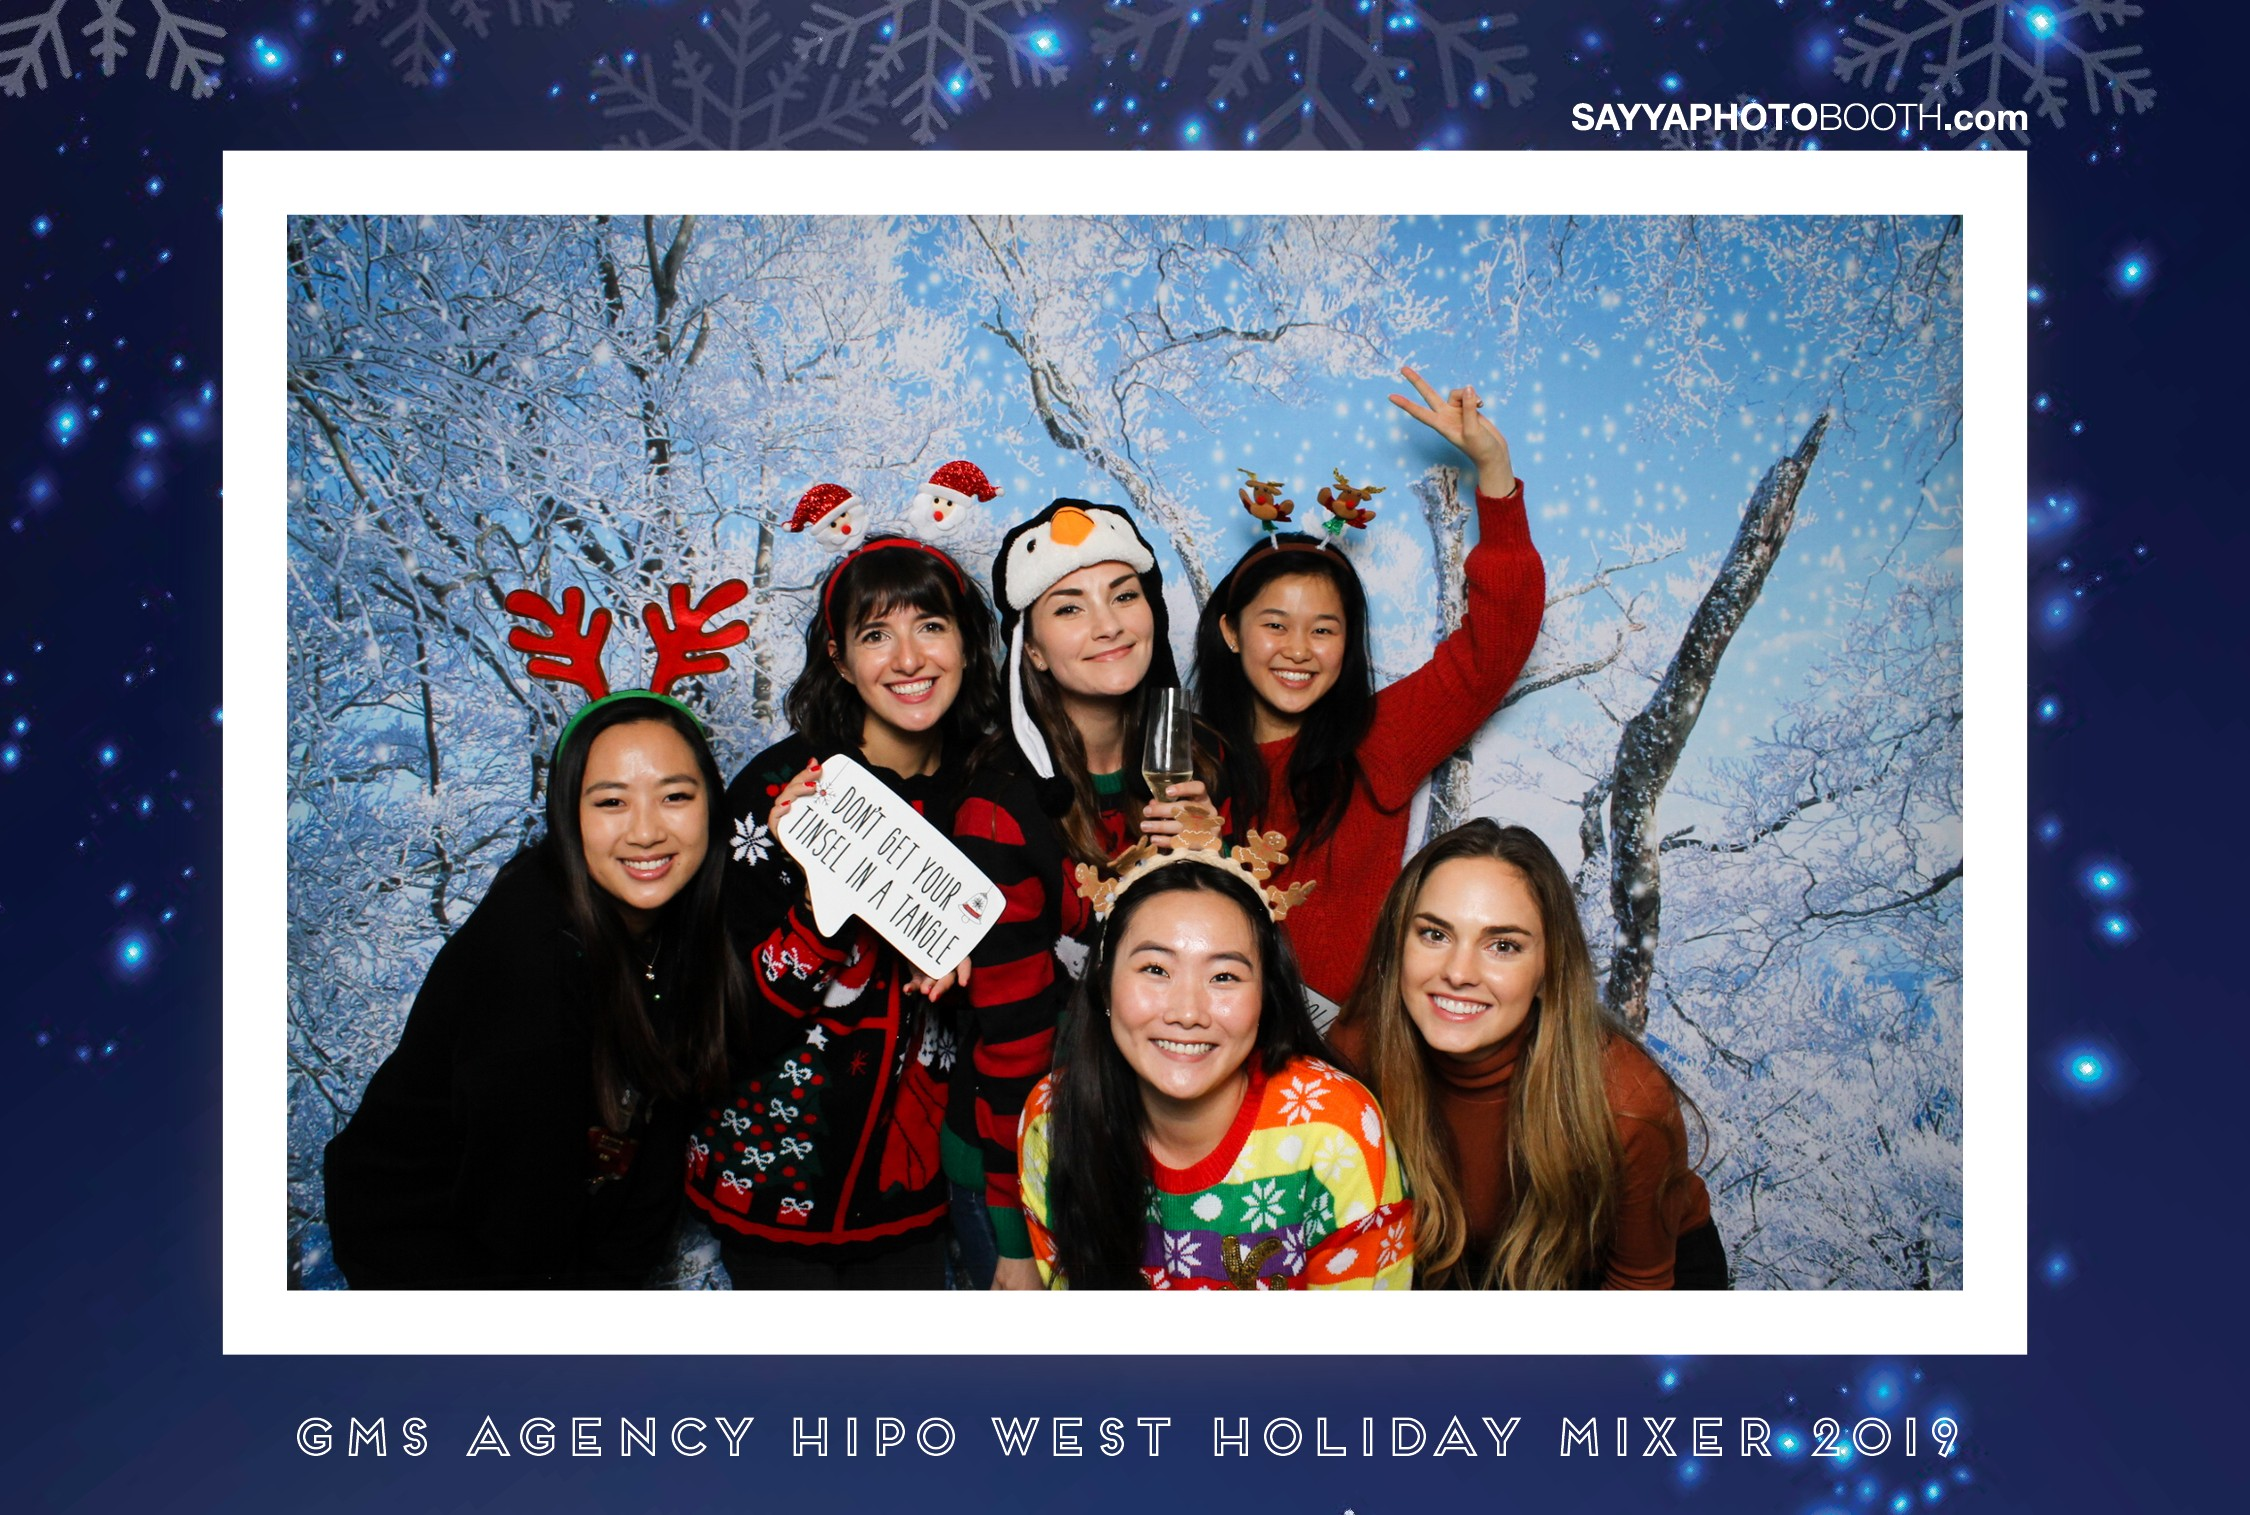 GMS Agency HiPo West Holiday Mixer